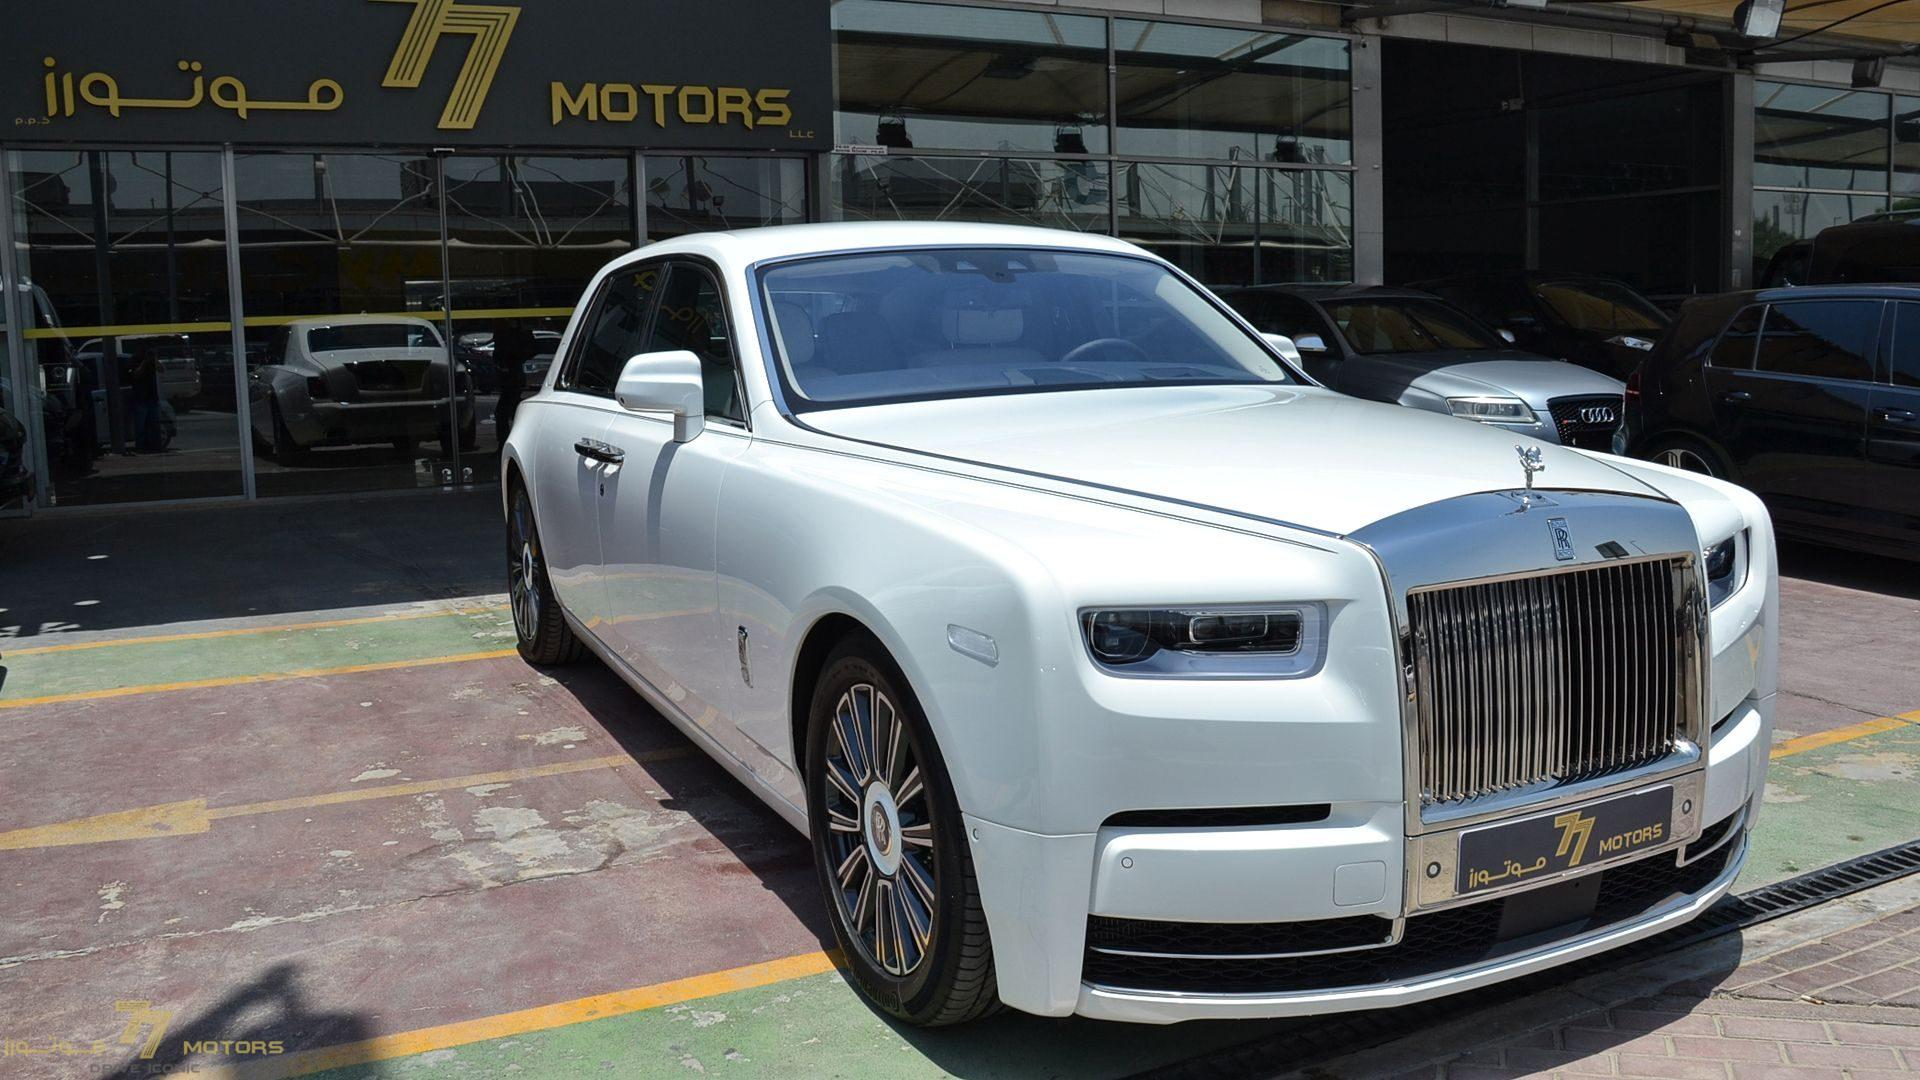 Inventory 77 Motors Rolls Royce Phantom Series Ii